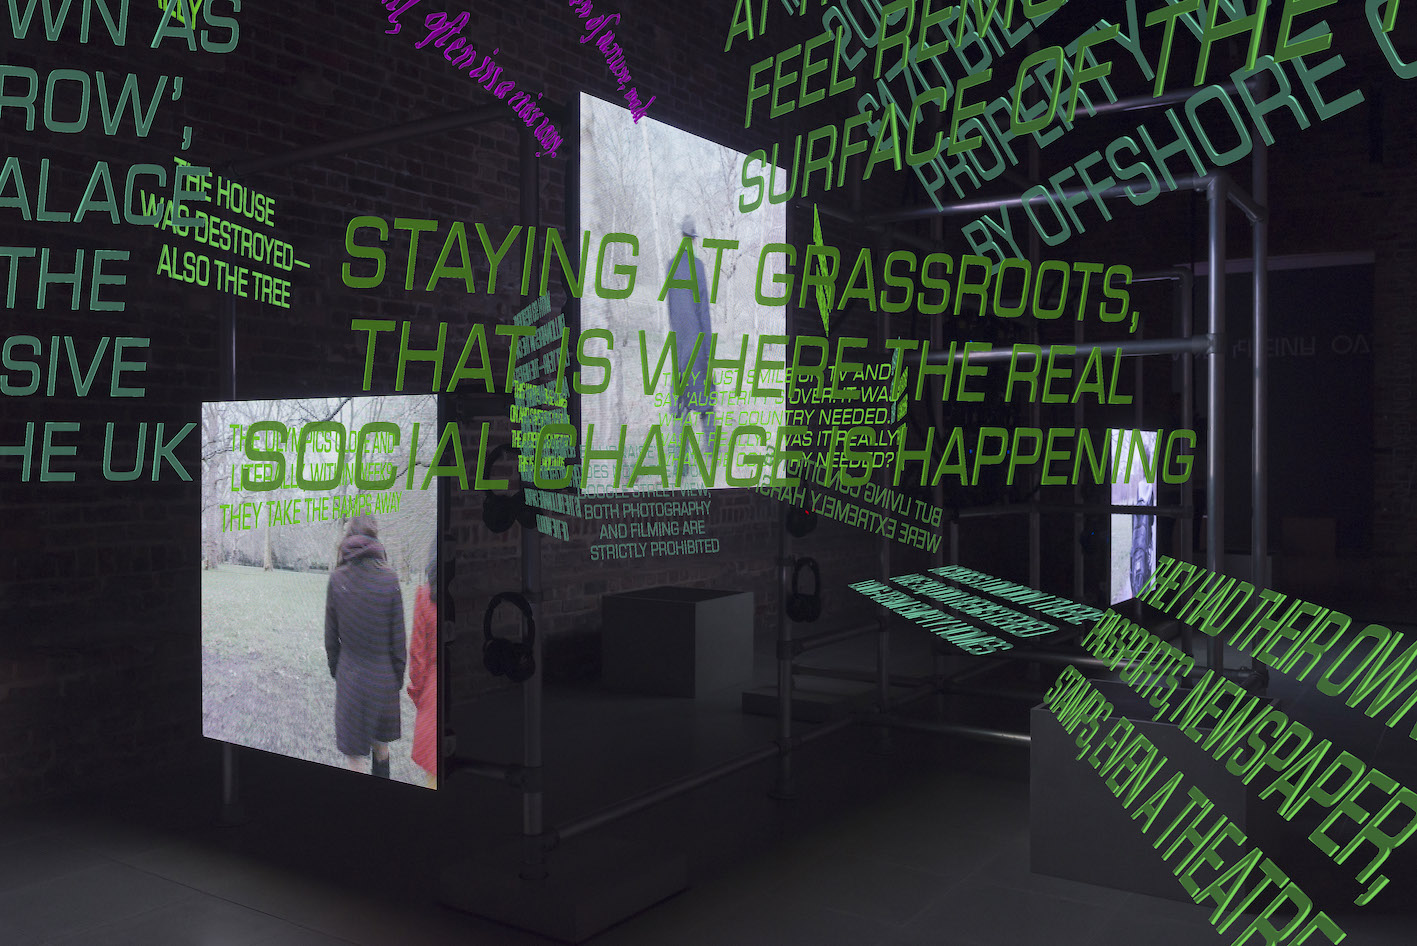 Hito Steyerl Power Plants Installation view, 11 April – 6 May 2019, Serpentine Galleries Design by Ayham Ghraowi, Developed by Ivaylo Getov Courtesy of the Artist, Andrew Kreps Gallery (New York) and Esther Schipper Gallery (Berlin) Photograph: © 2019 readsreads.info